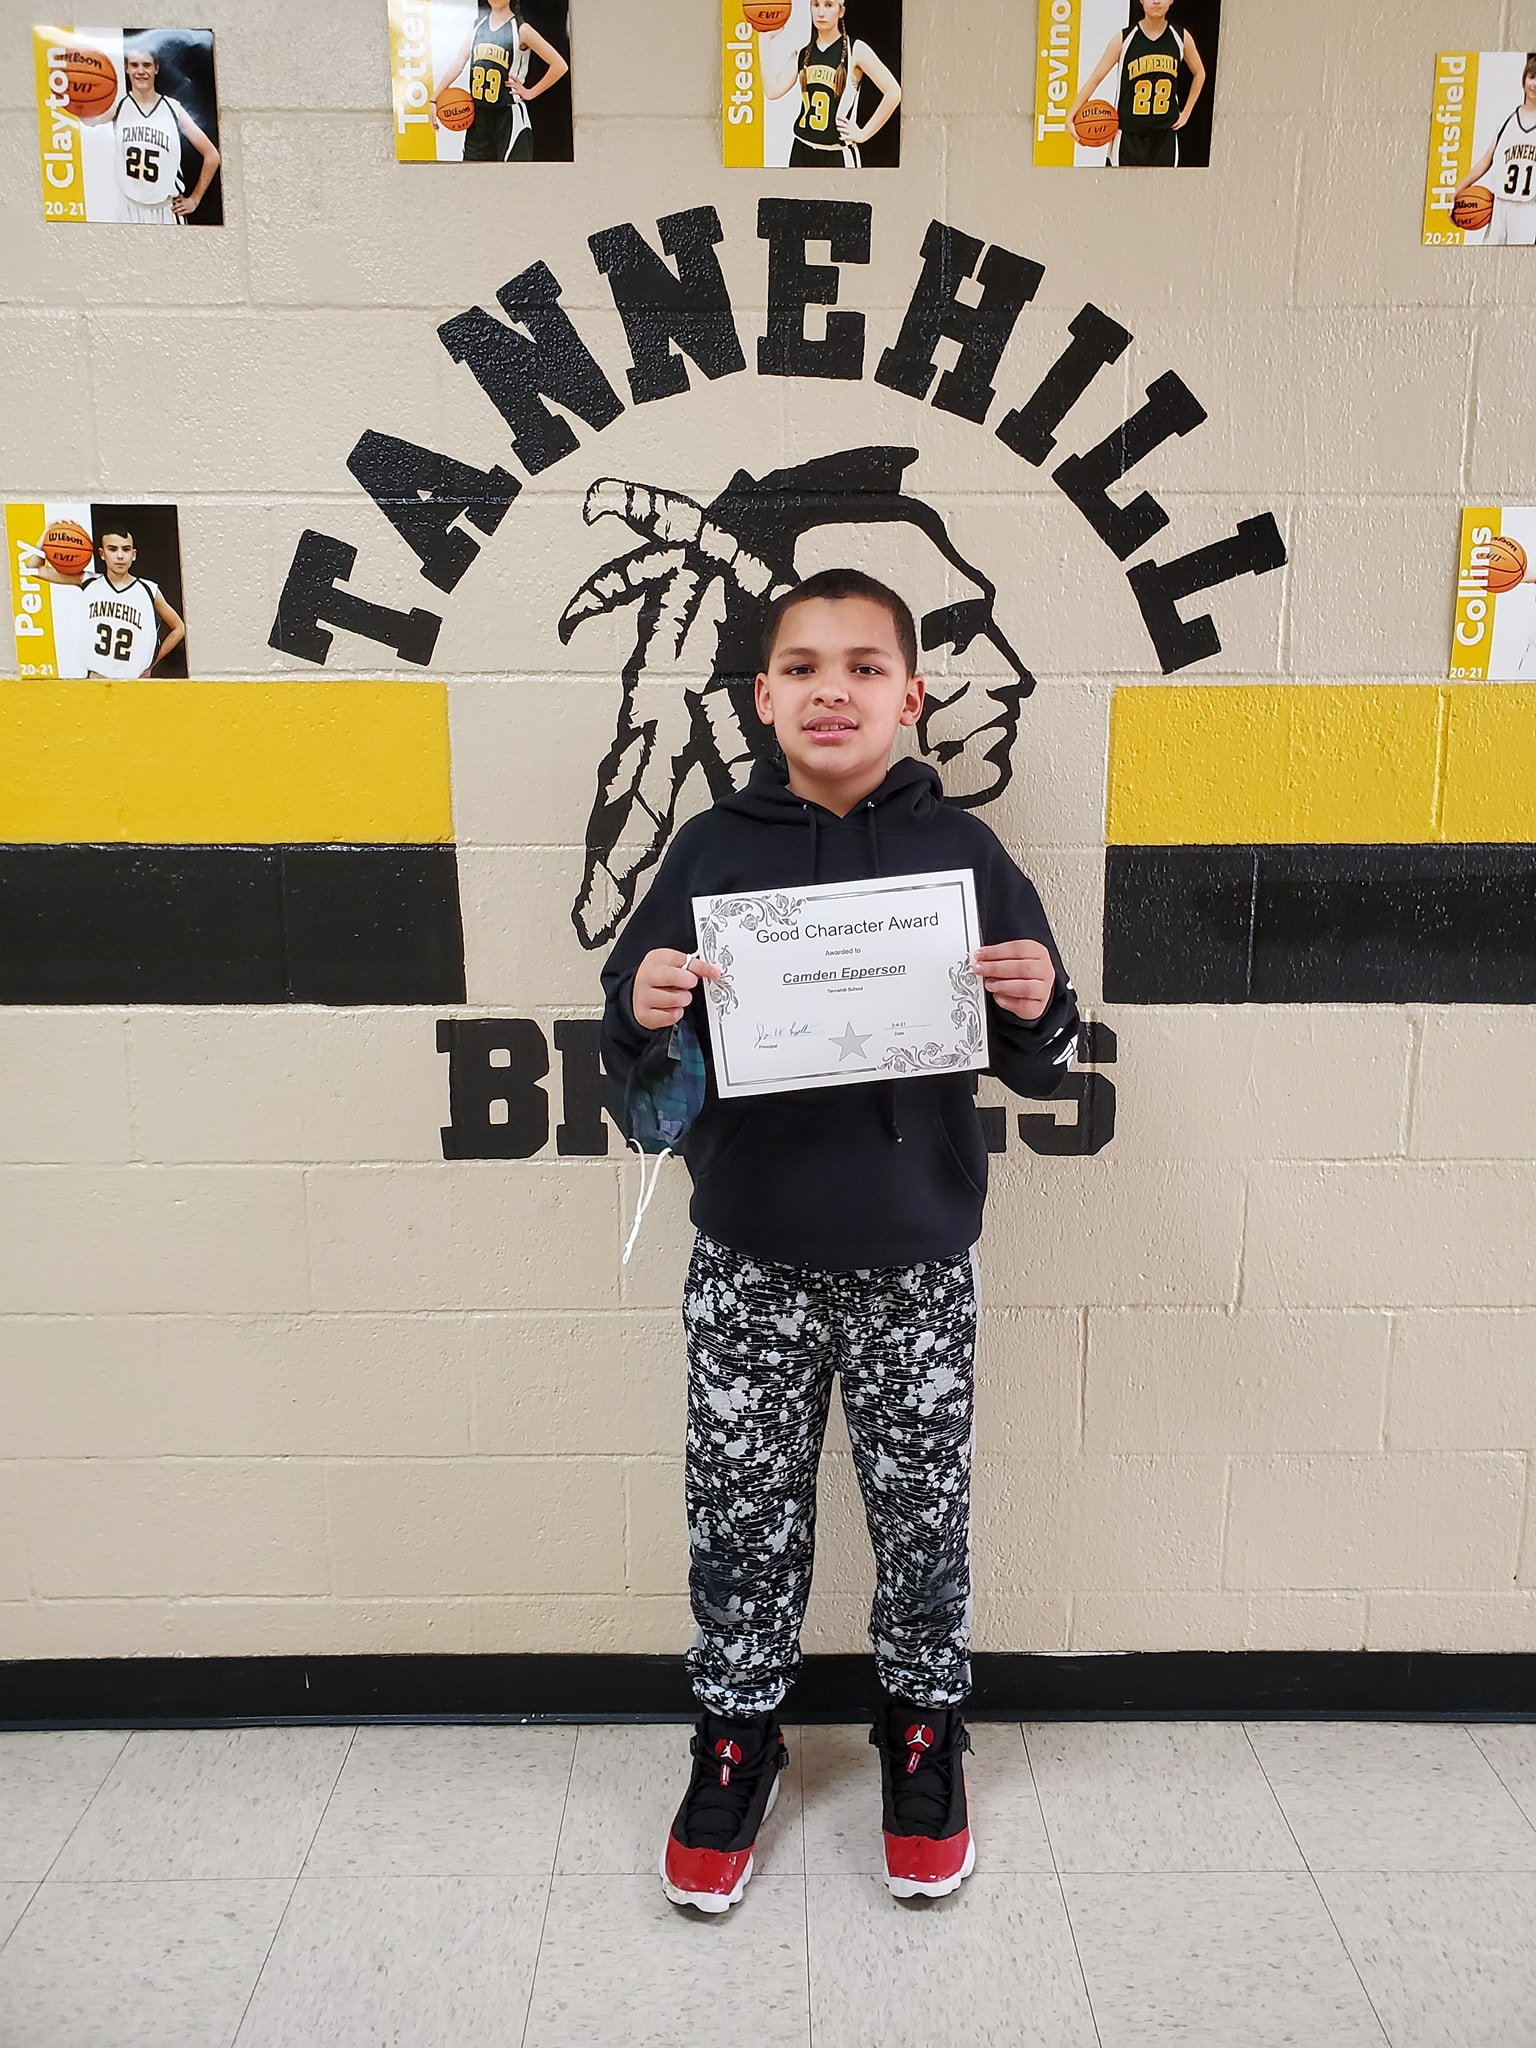 January Good Character of the Month: Camden Epperson